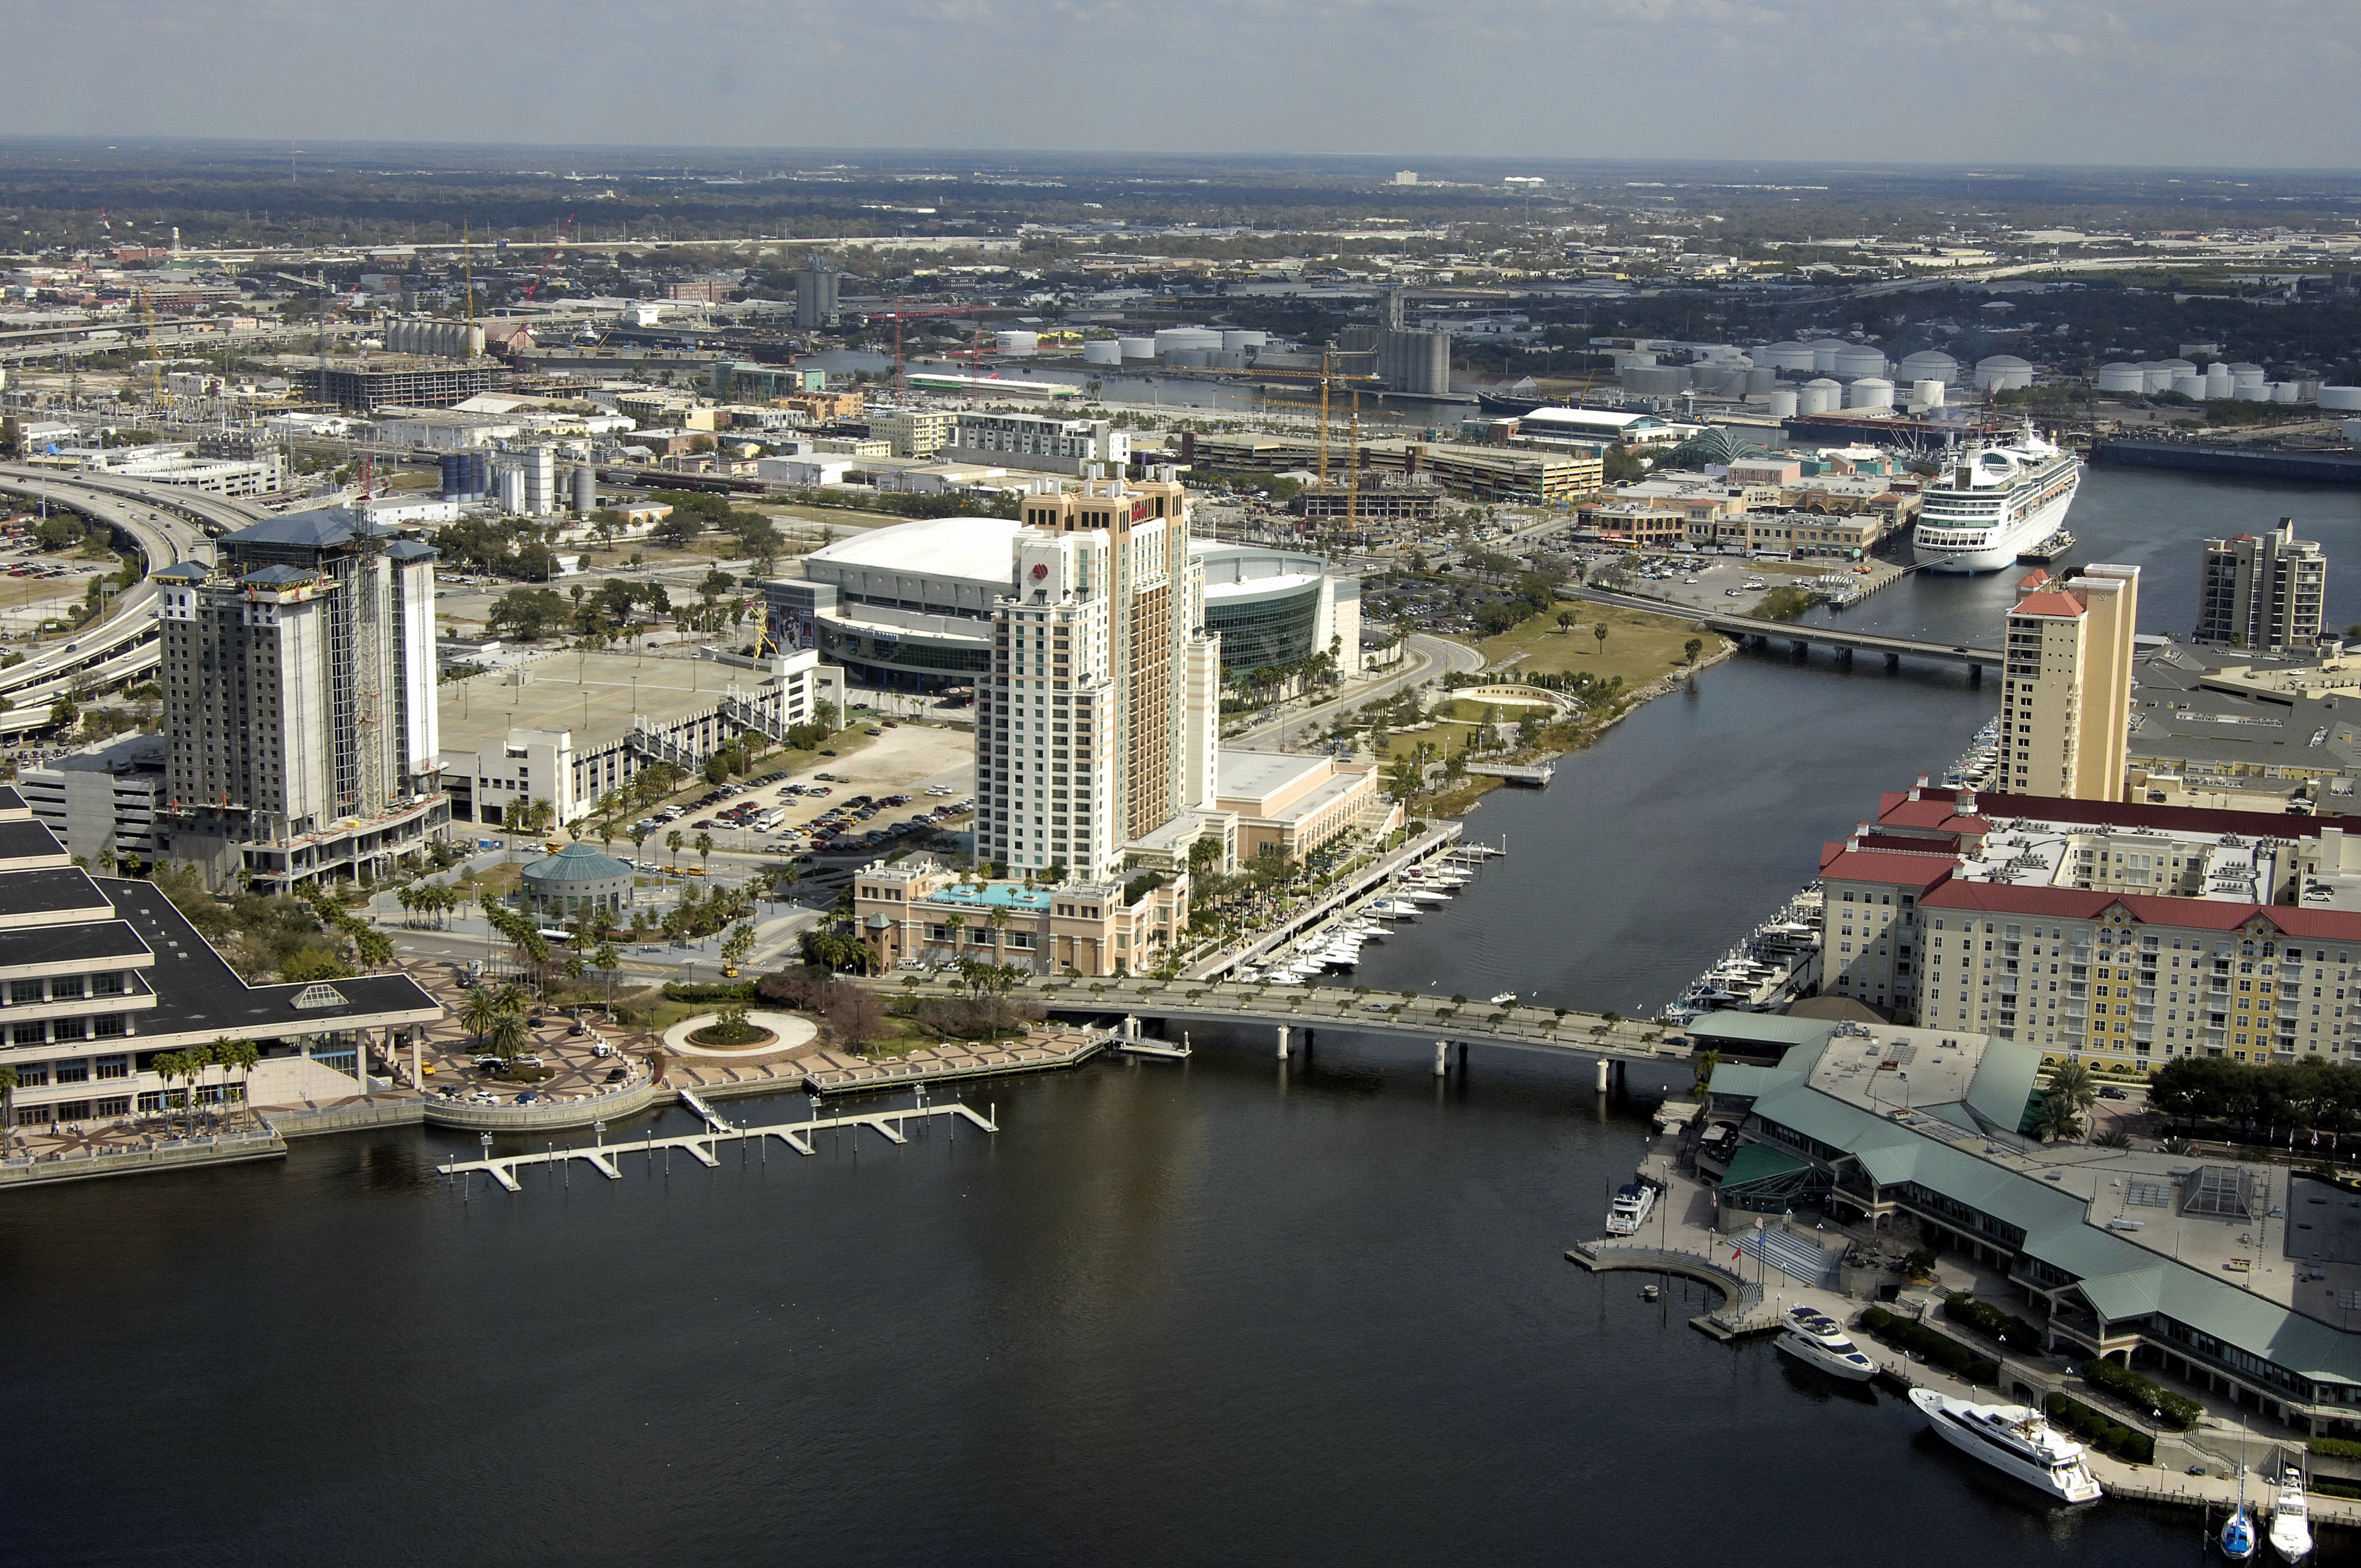 tampa marriott waterside hotel marina in tampa fl. Black Bedroom Furniture Sets. Home Design Ideas